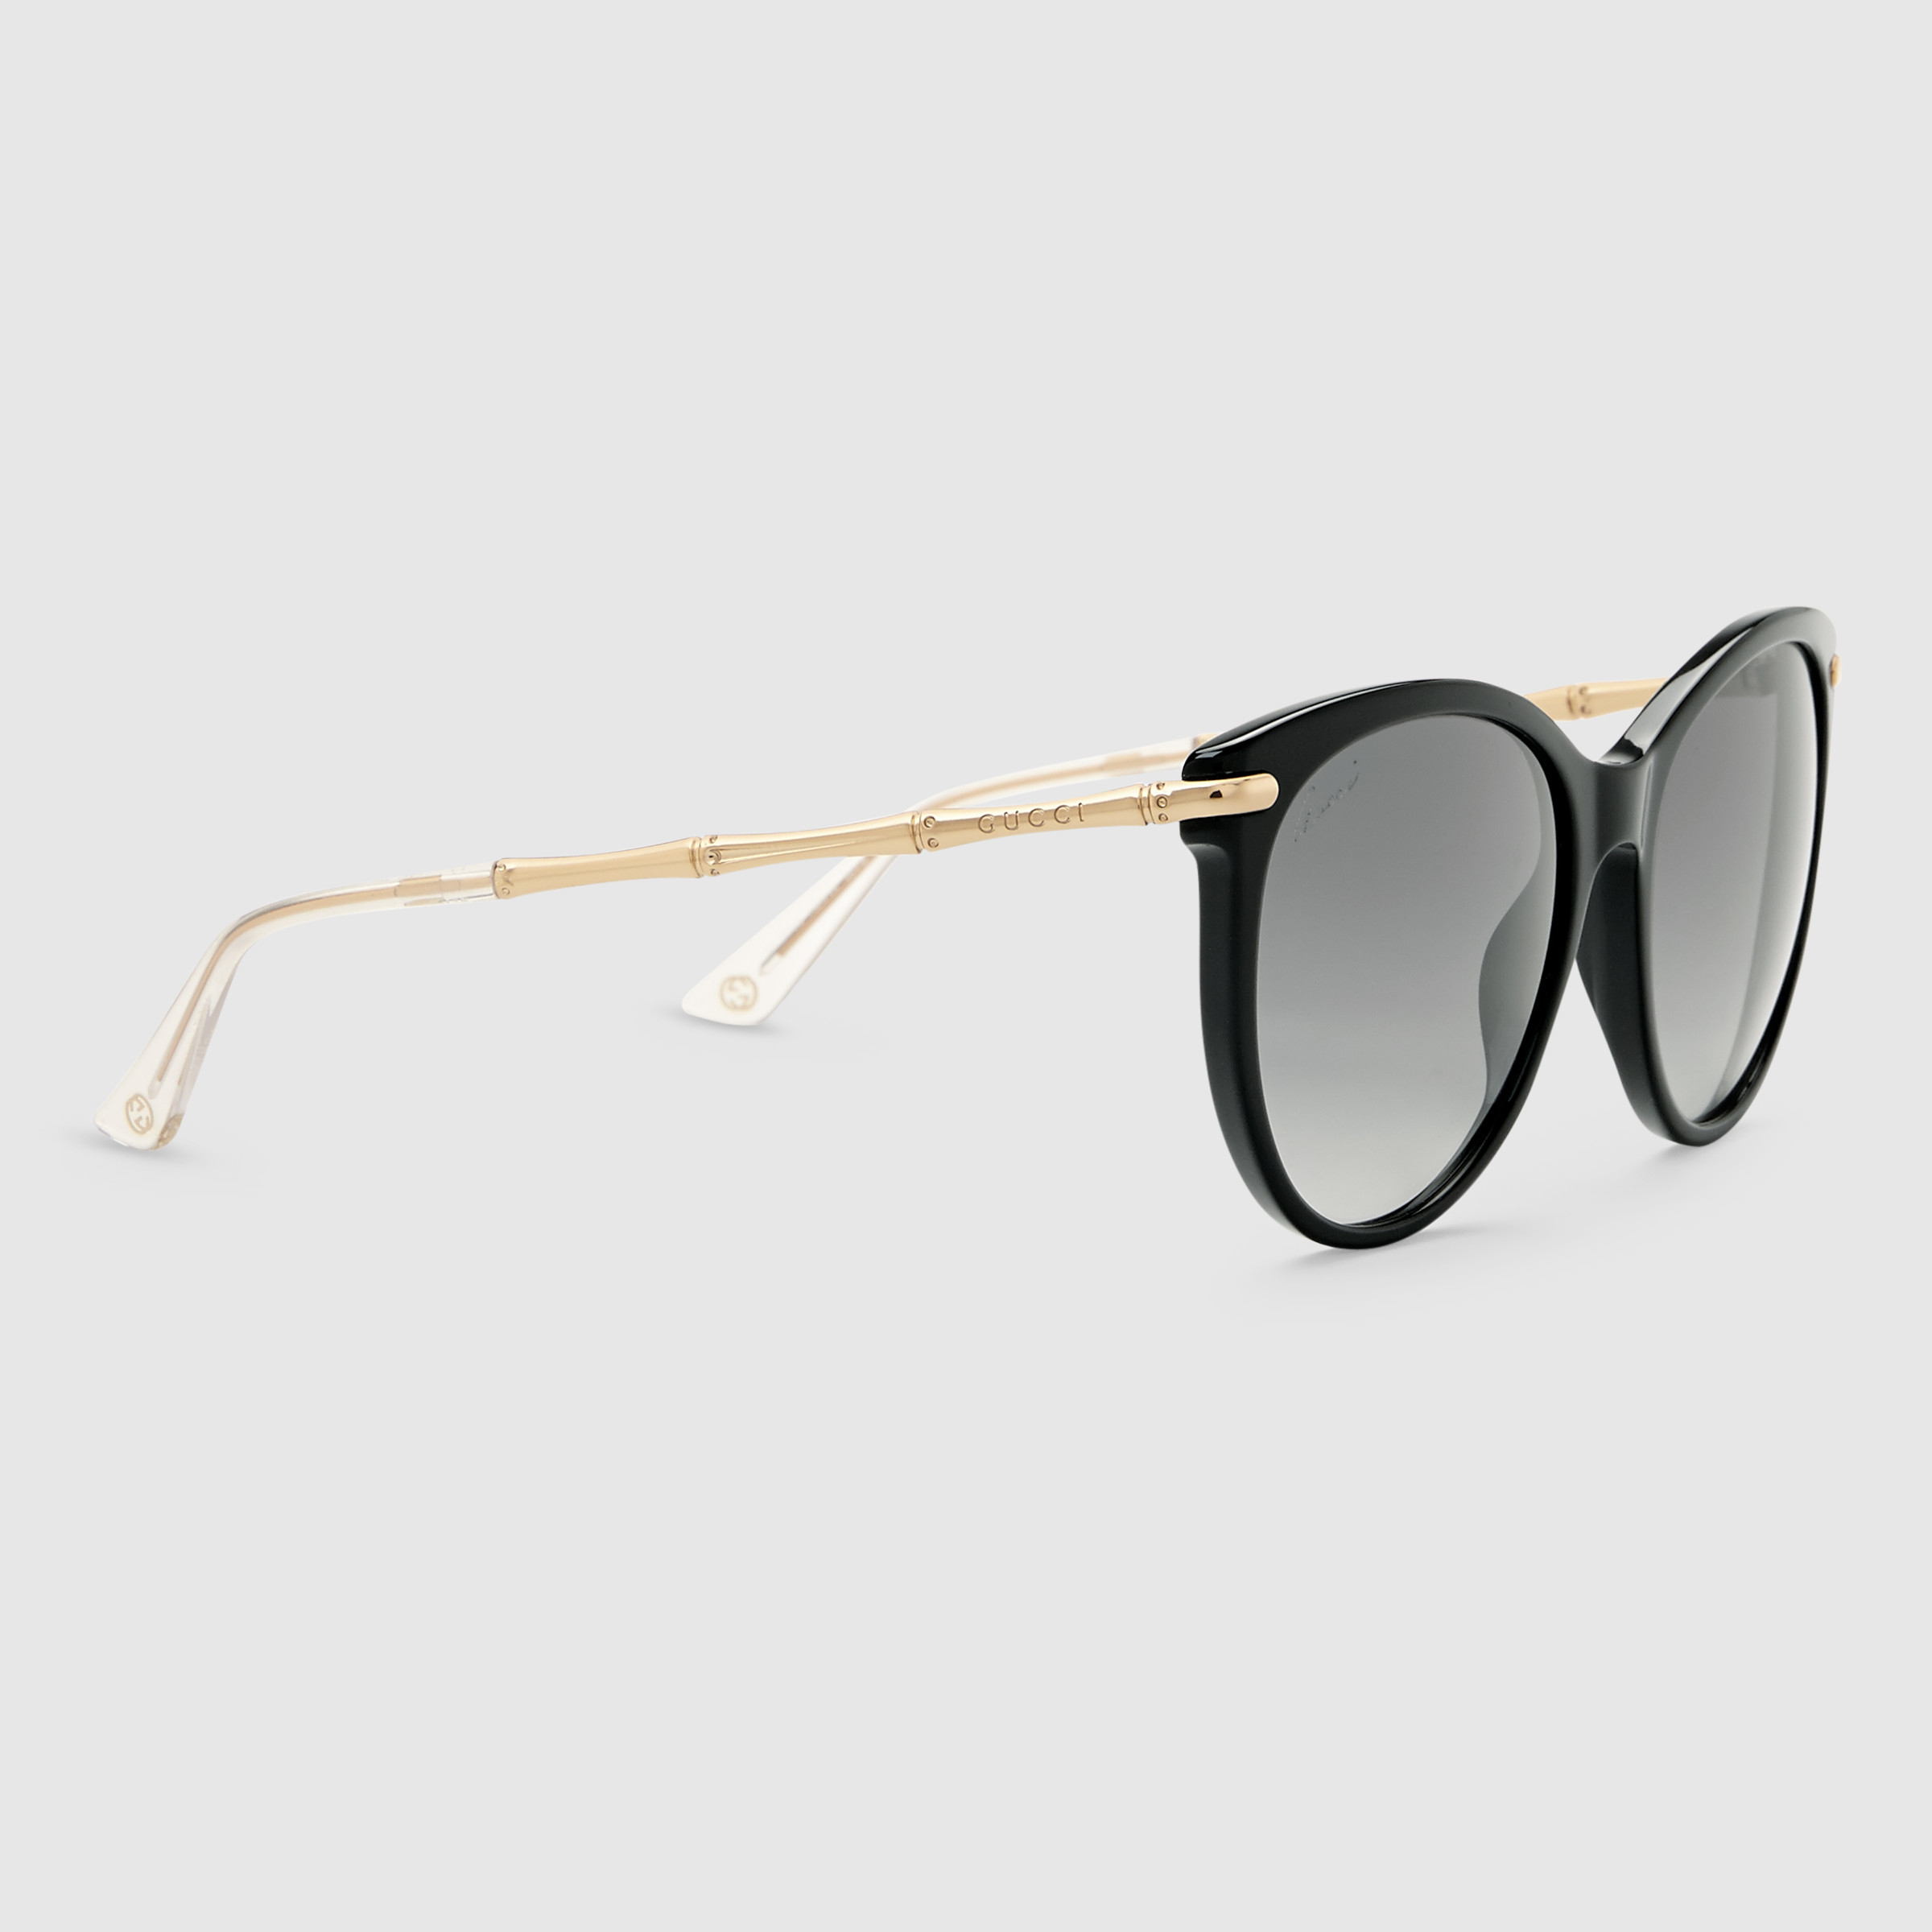 b4cb208e6f2 Lyst - Gucci Cat Eye Sunglasses With Metal Bamboo Temples in Yellow